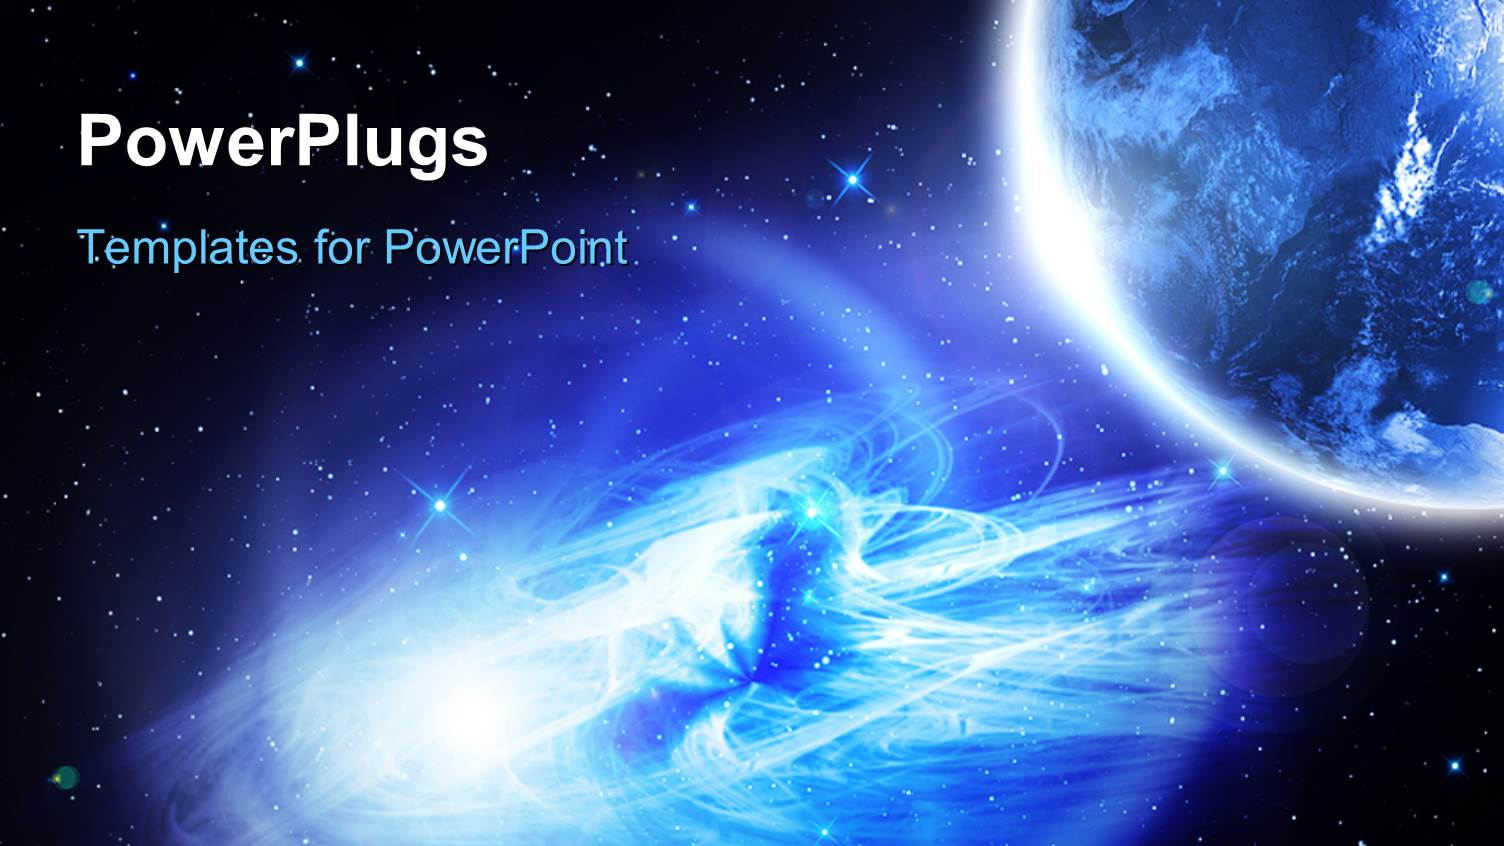 Planets powerpoint templates crystalgraphics powerplugs powerpoint template with night vision of the planet earth with galaxy and glowing stars toneelgroepblik Gallery